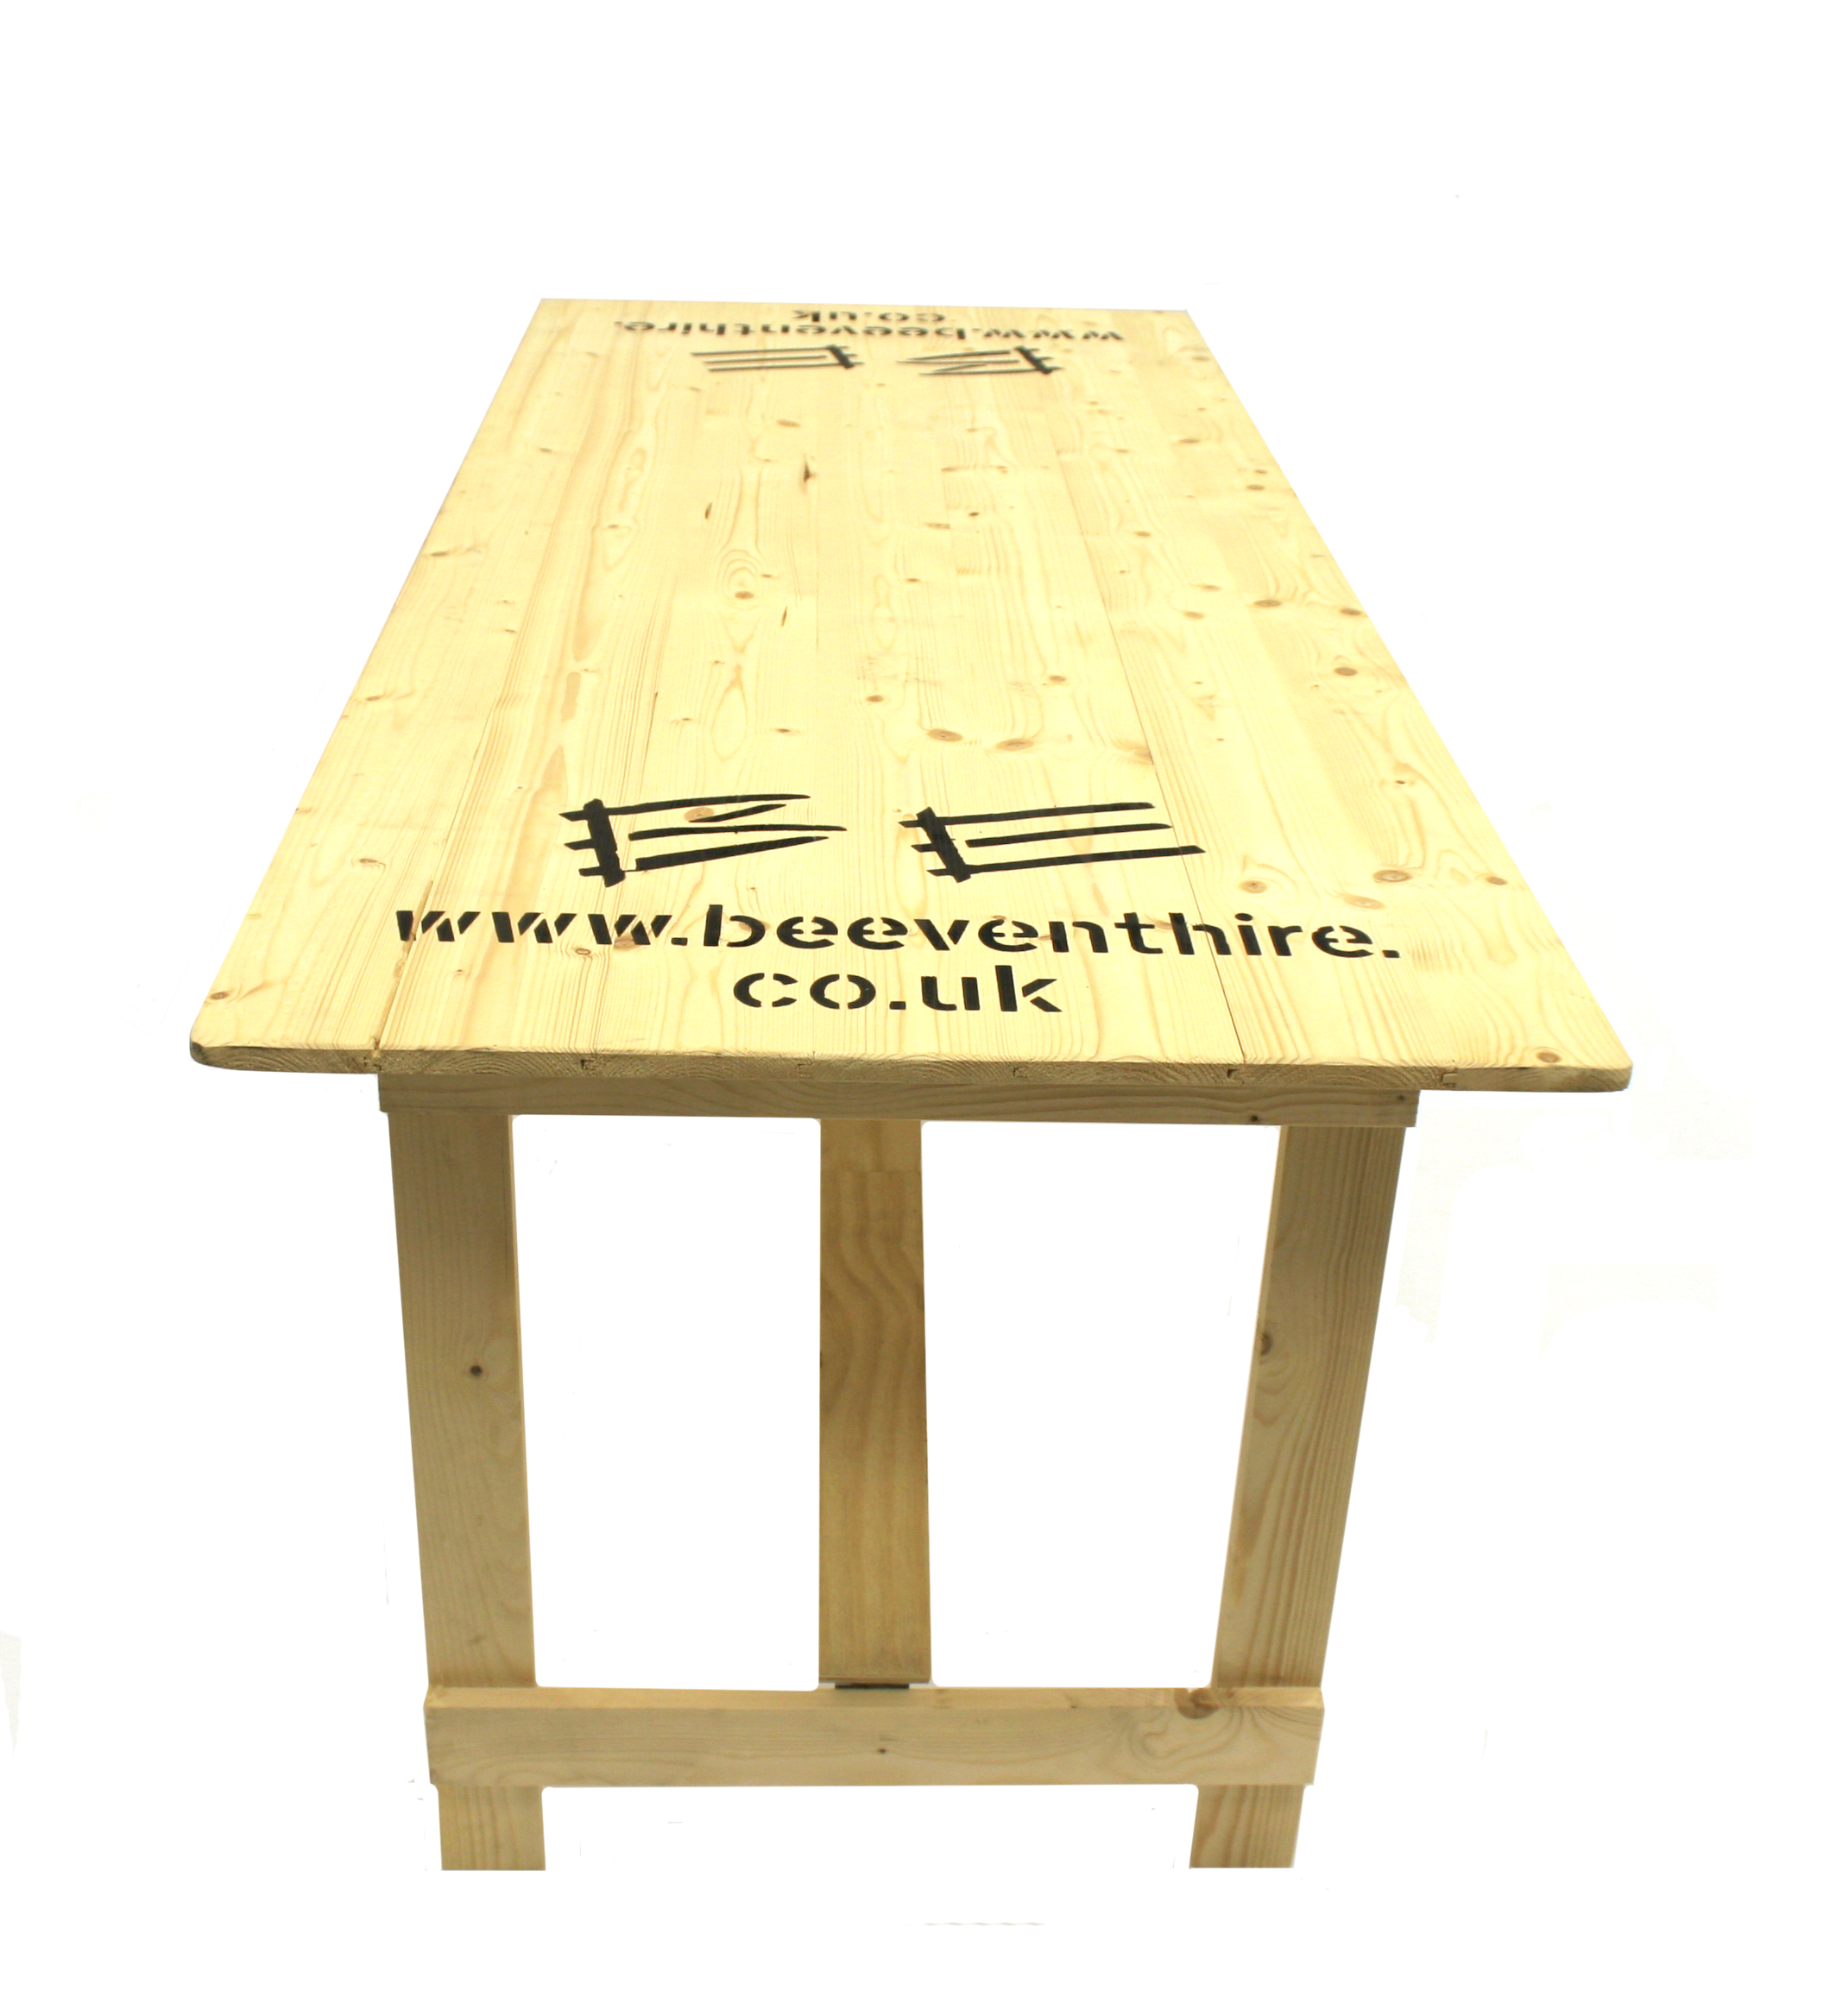 6'x 2'6'' Trestle Table - BE Event Hire